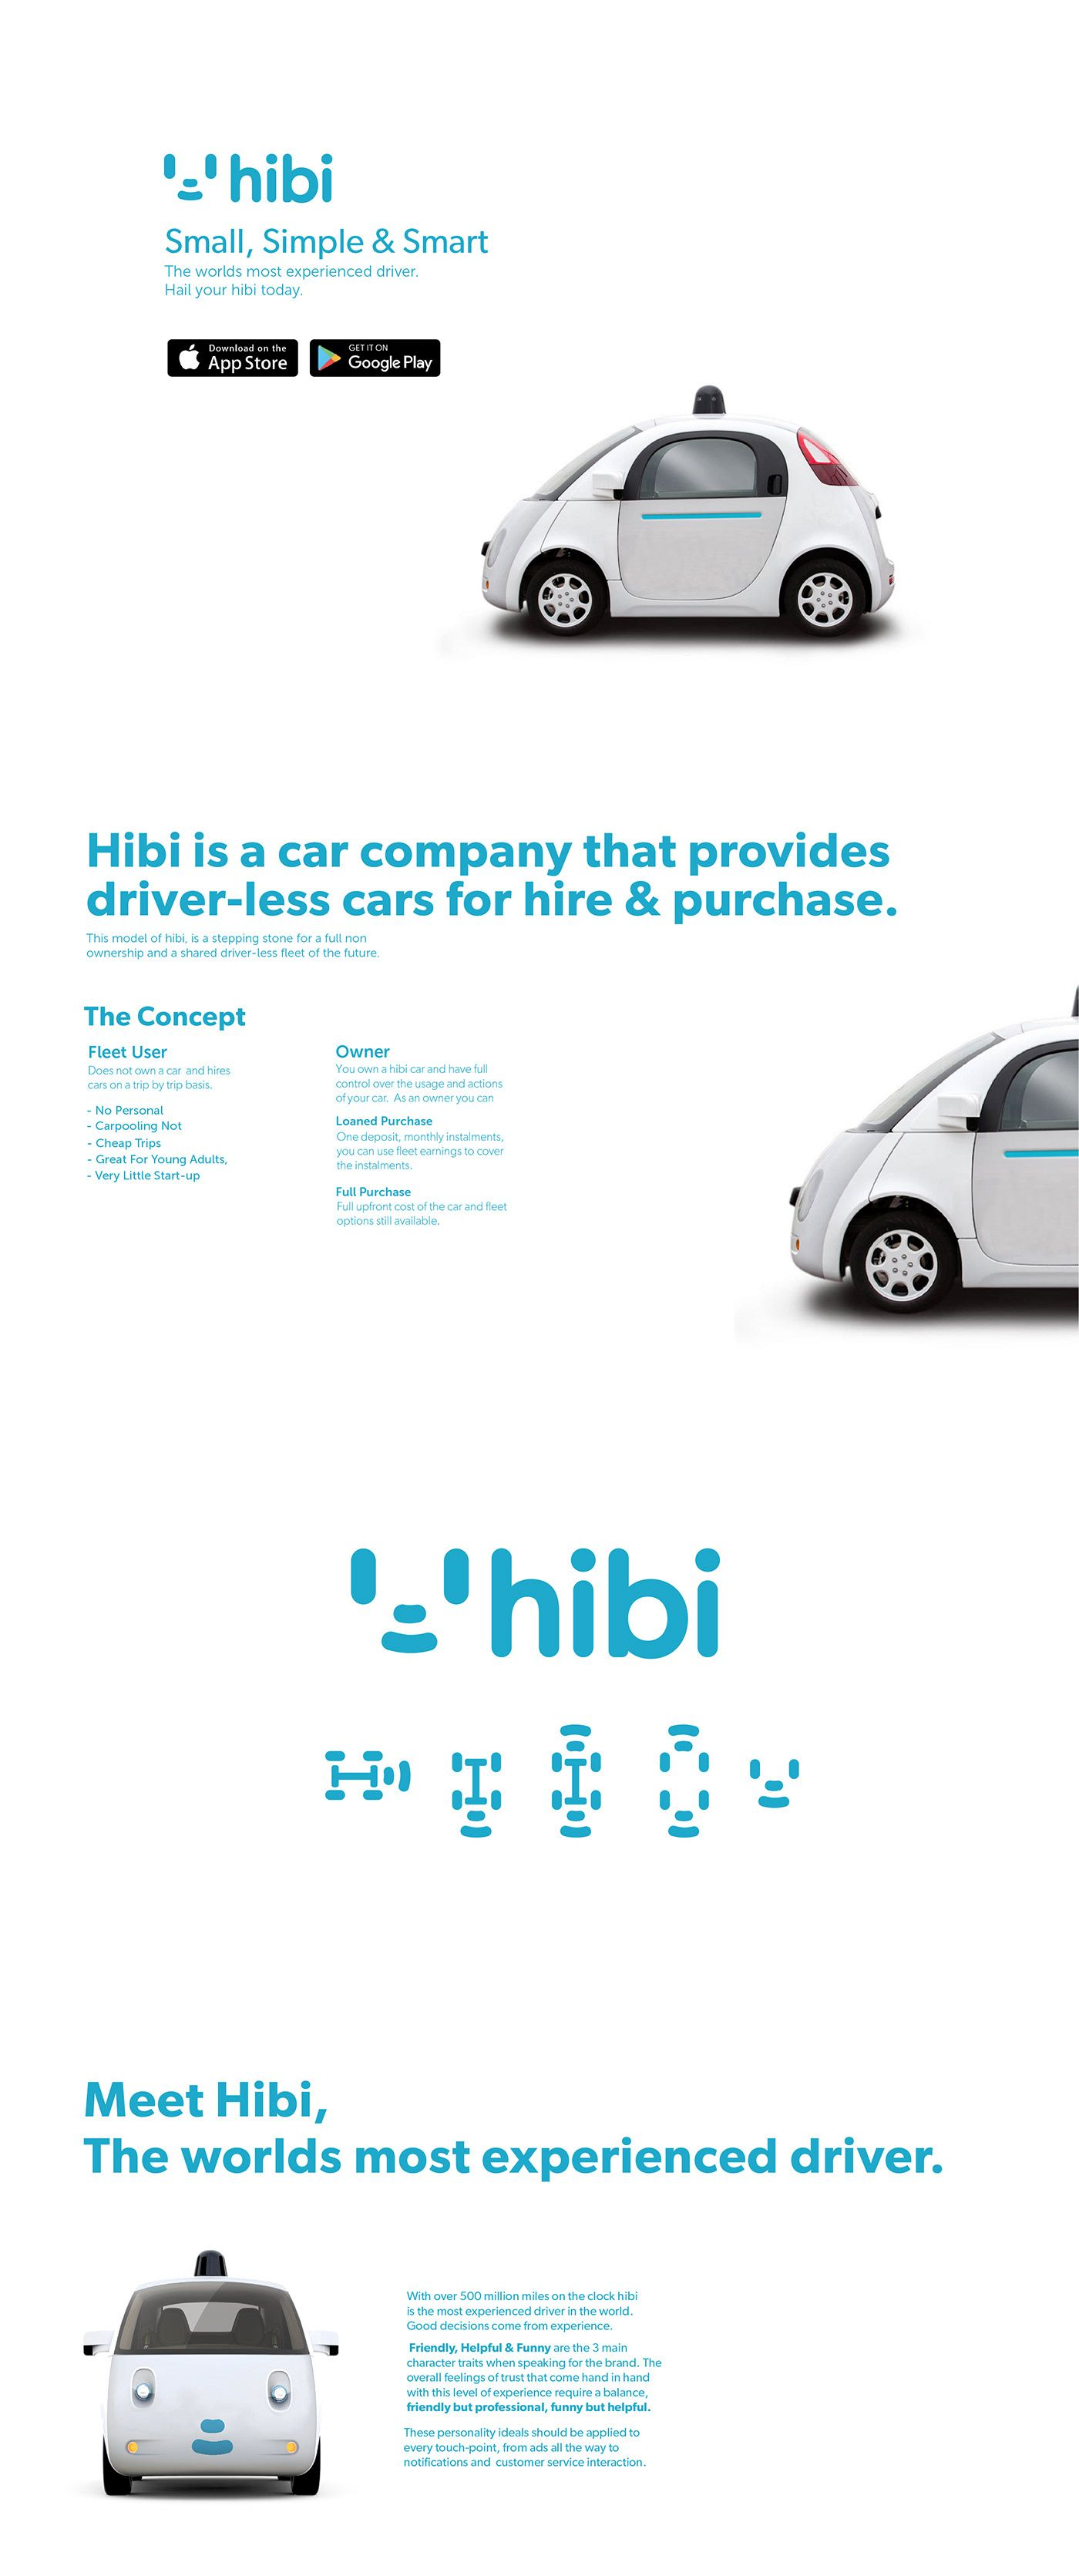 The worlds most experienced driver.Hail your hibi today